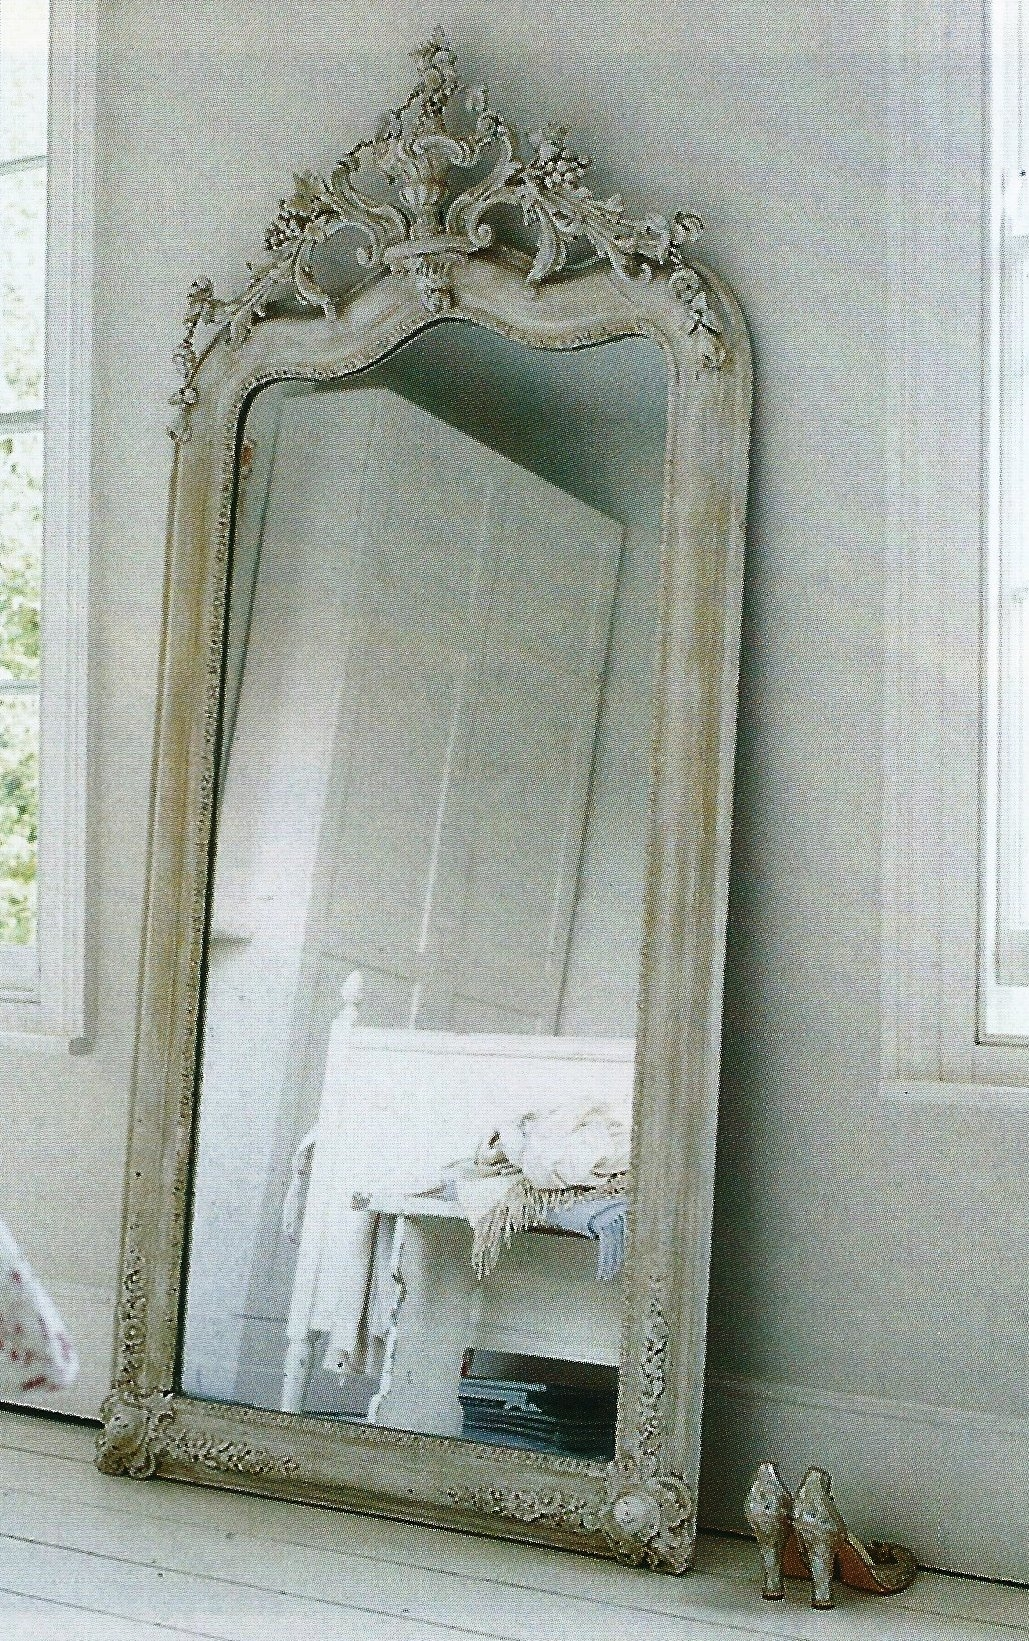 French Provencal Leaning Mirror Vintage Shab Chic Cottage Chic Pertaining To Long Vintage Mirror (Image 8 of 15)